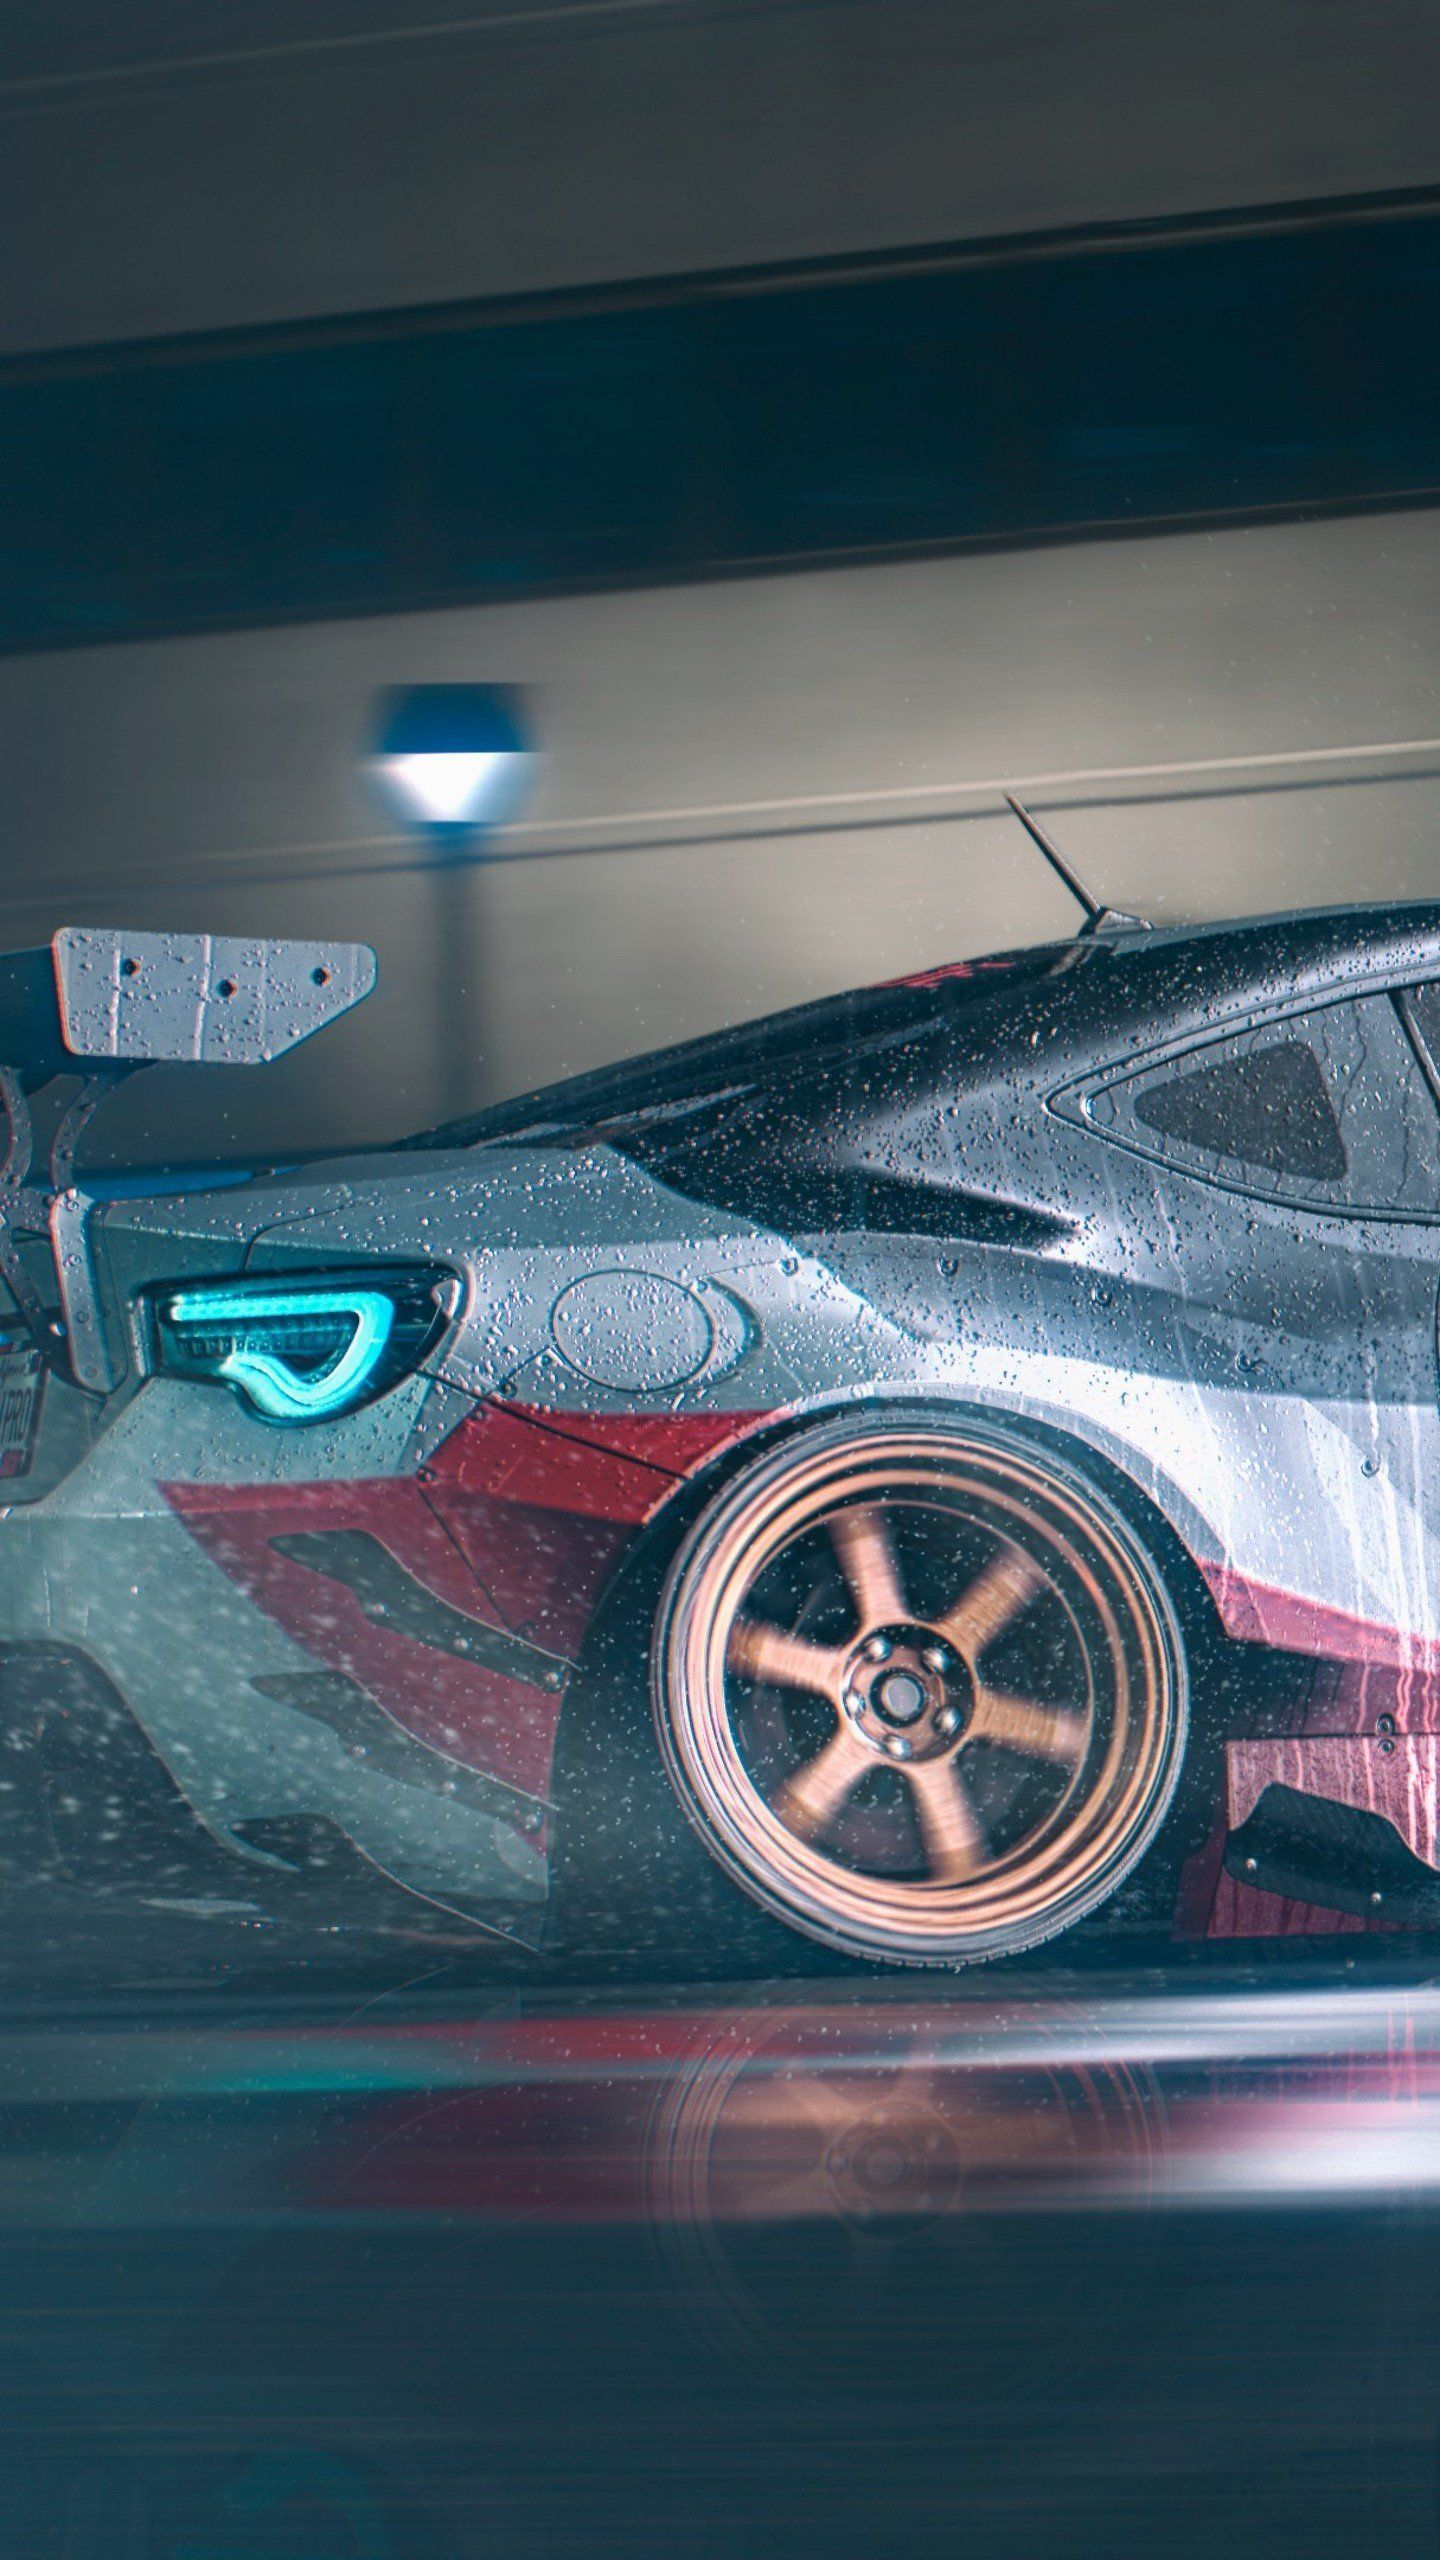 Shutterstock.com sizing the walls sizing allows you to maneuver the paper into position on the wall without tearing. Jdm Car Wallpaper 4k Phone